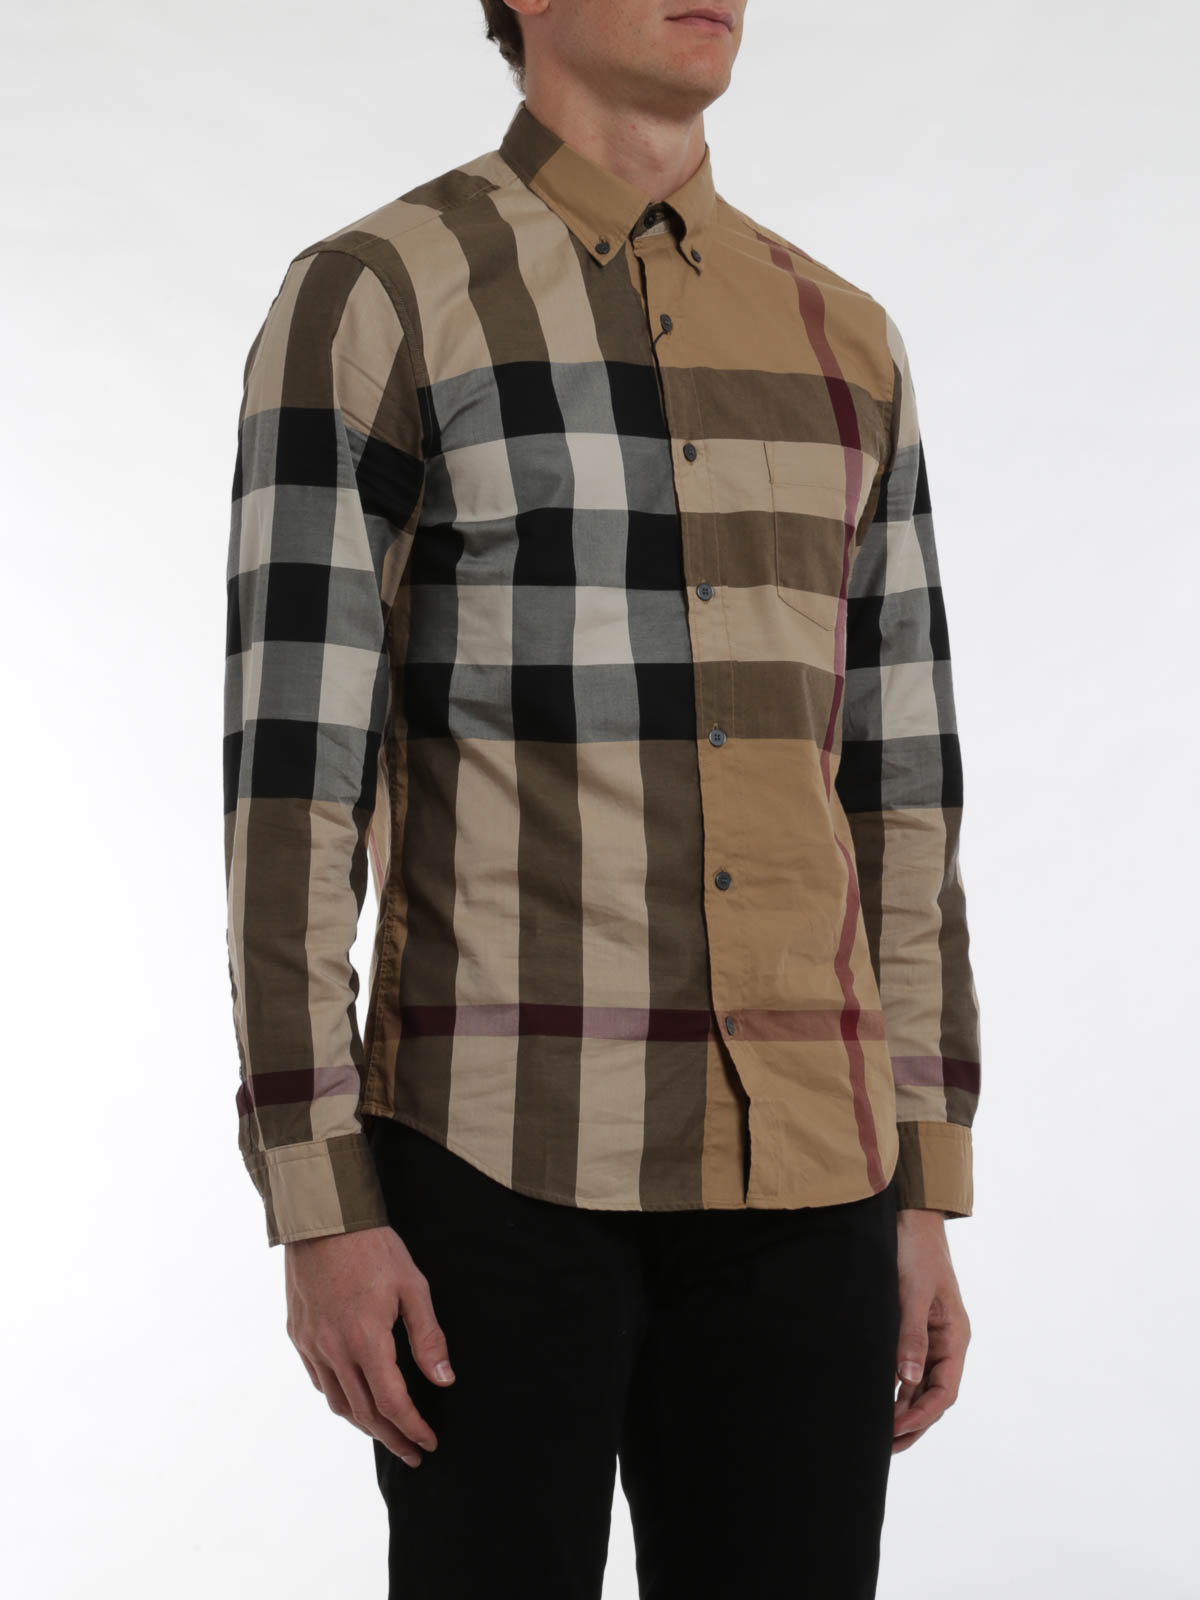 Exploded check shirt by burberry brit shirts ikrix for Burberry brit checked shirt